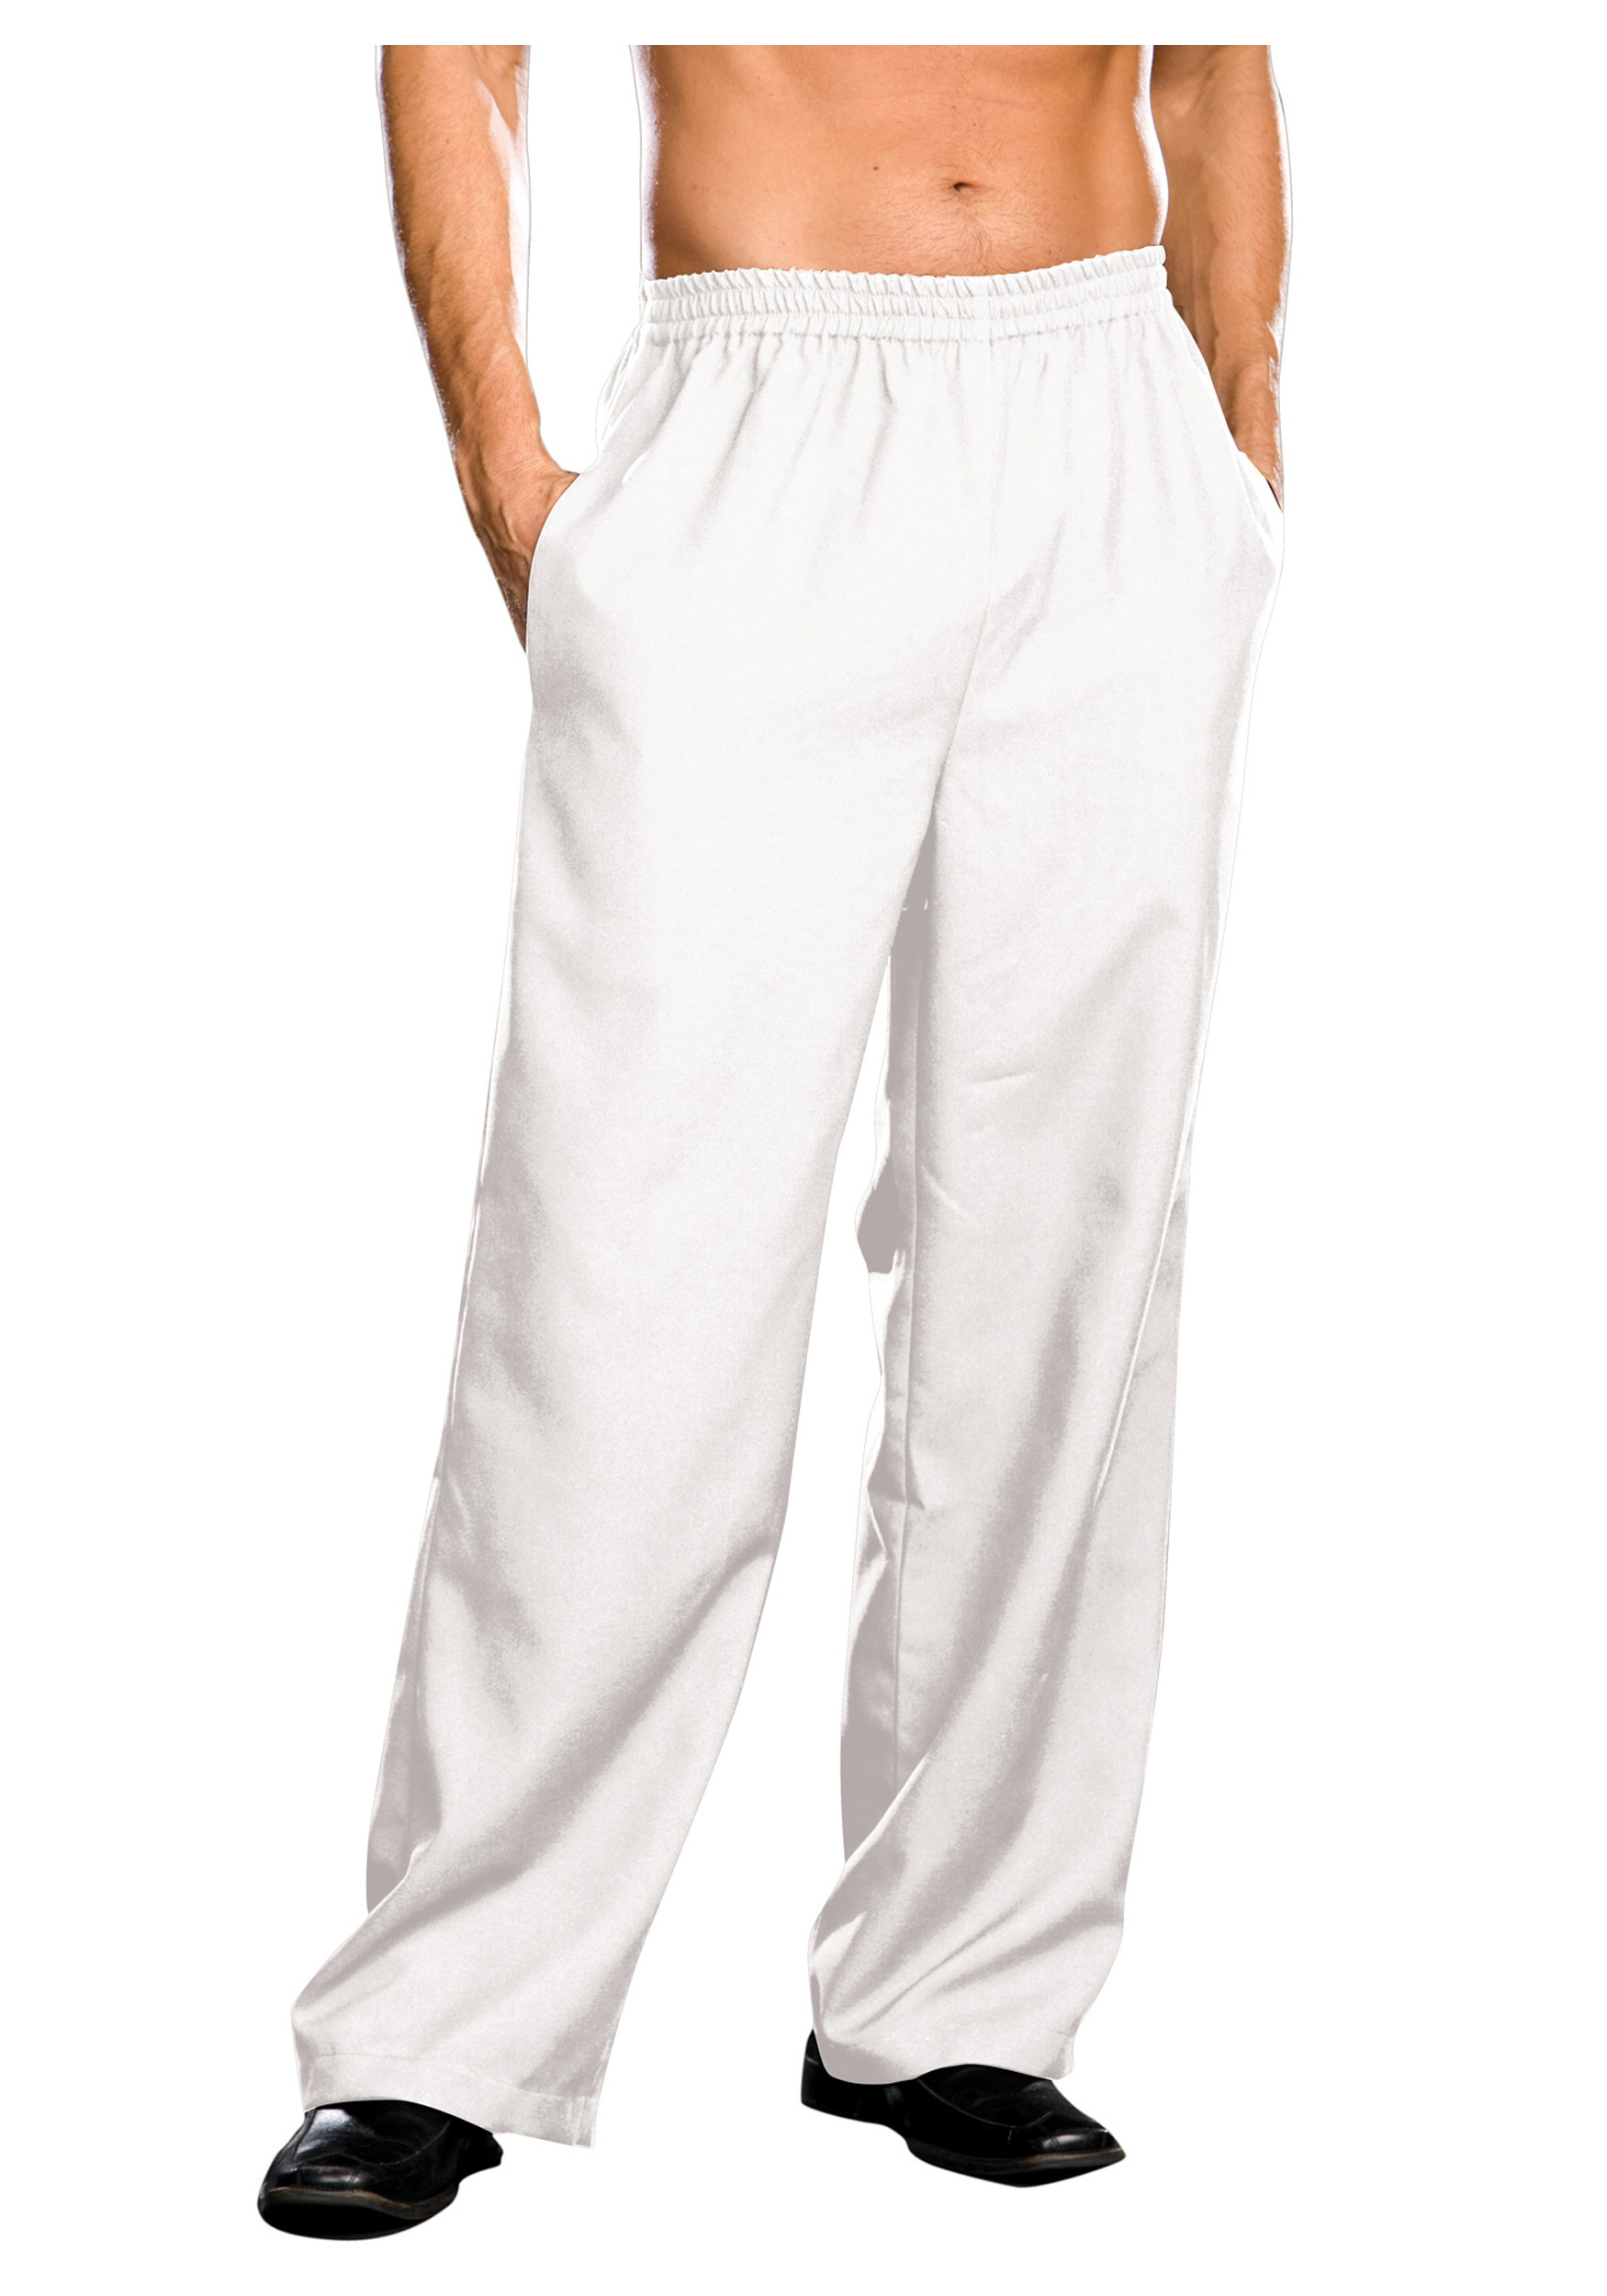 FREE SHIPPING AVAILABLE! Shop celebtubesnews.ml and save on White Pants.